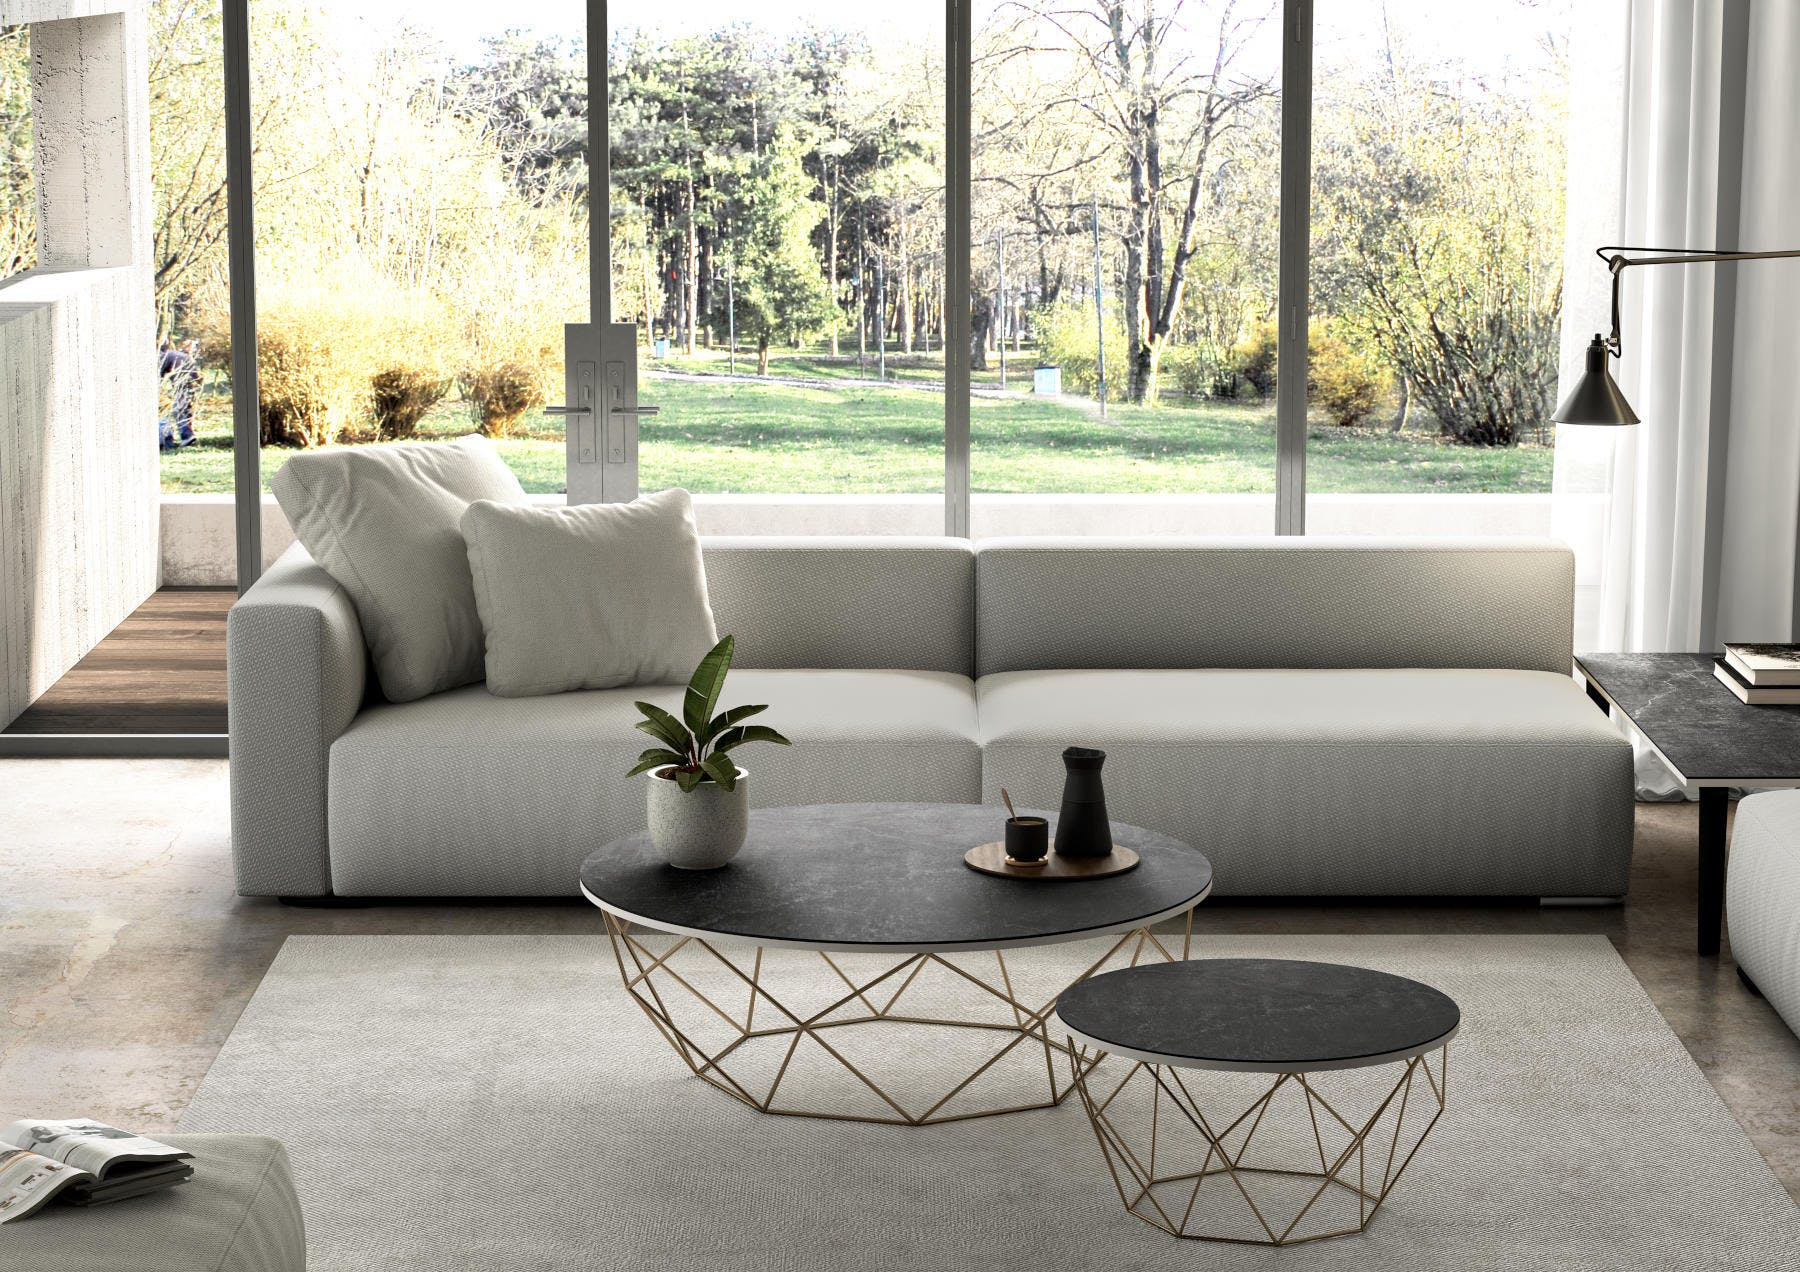 Image of Mesa Dekton Slim Table Detalle Laos 2 1 in Nice weather: let's make the most of it! - Cosentino